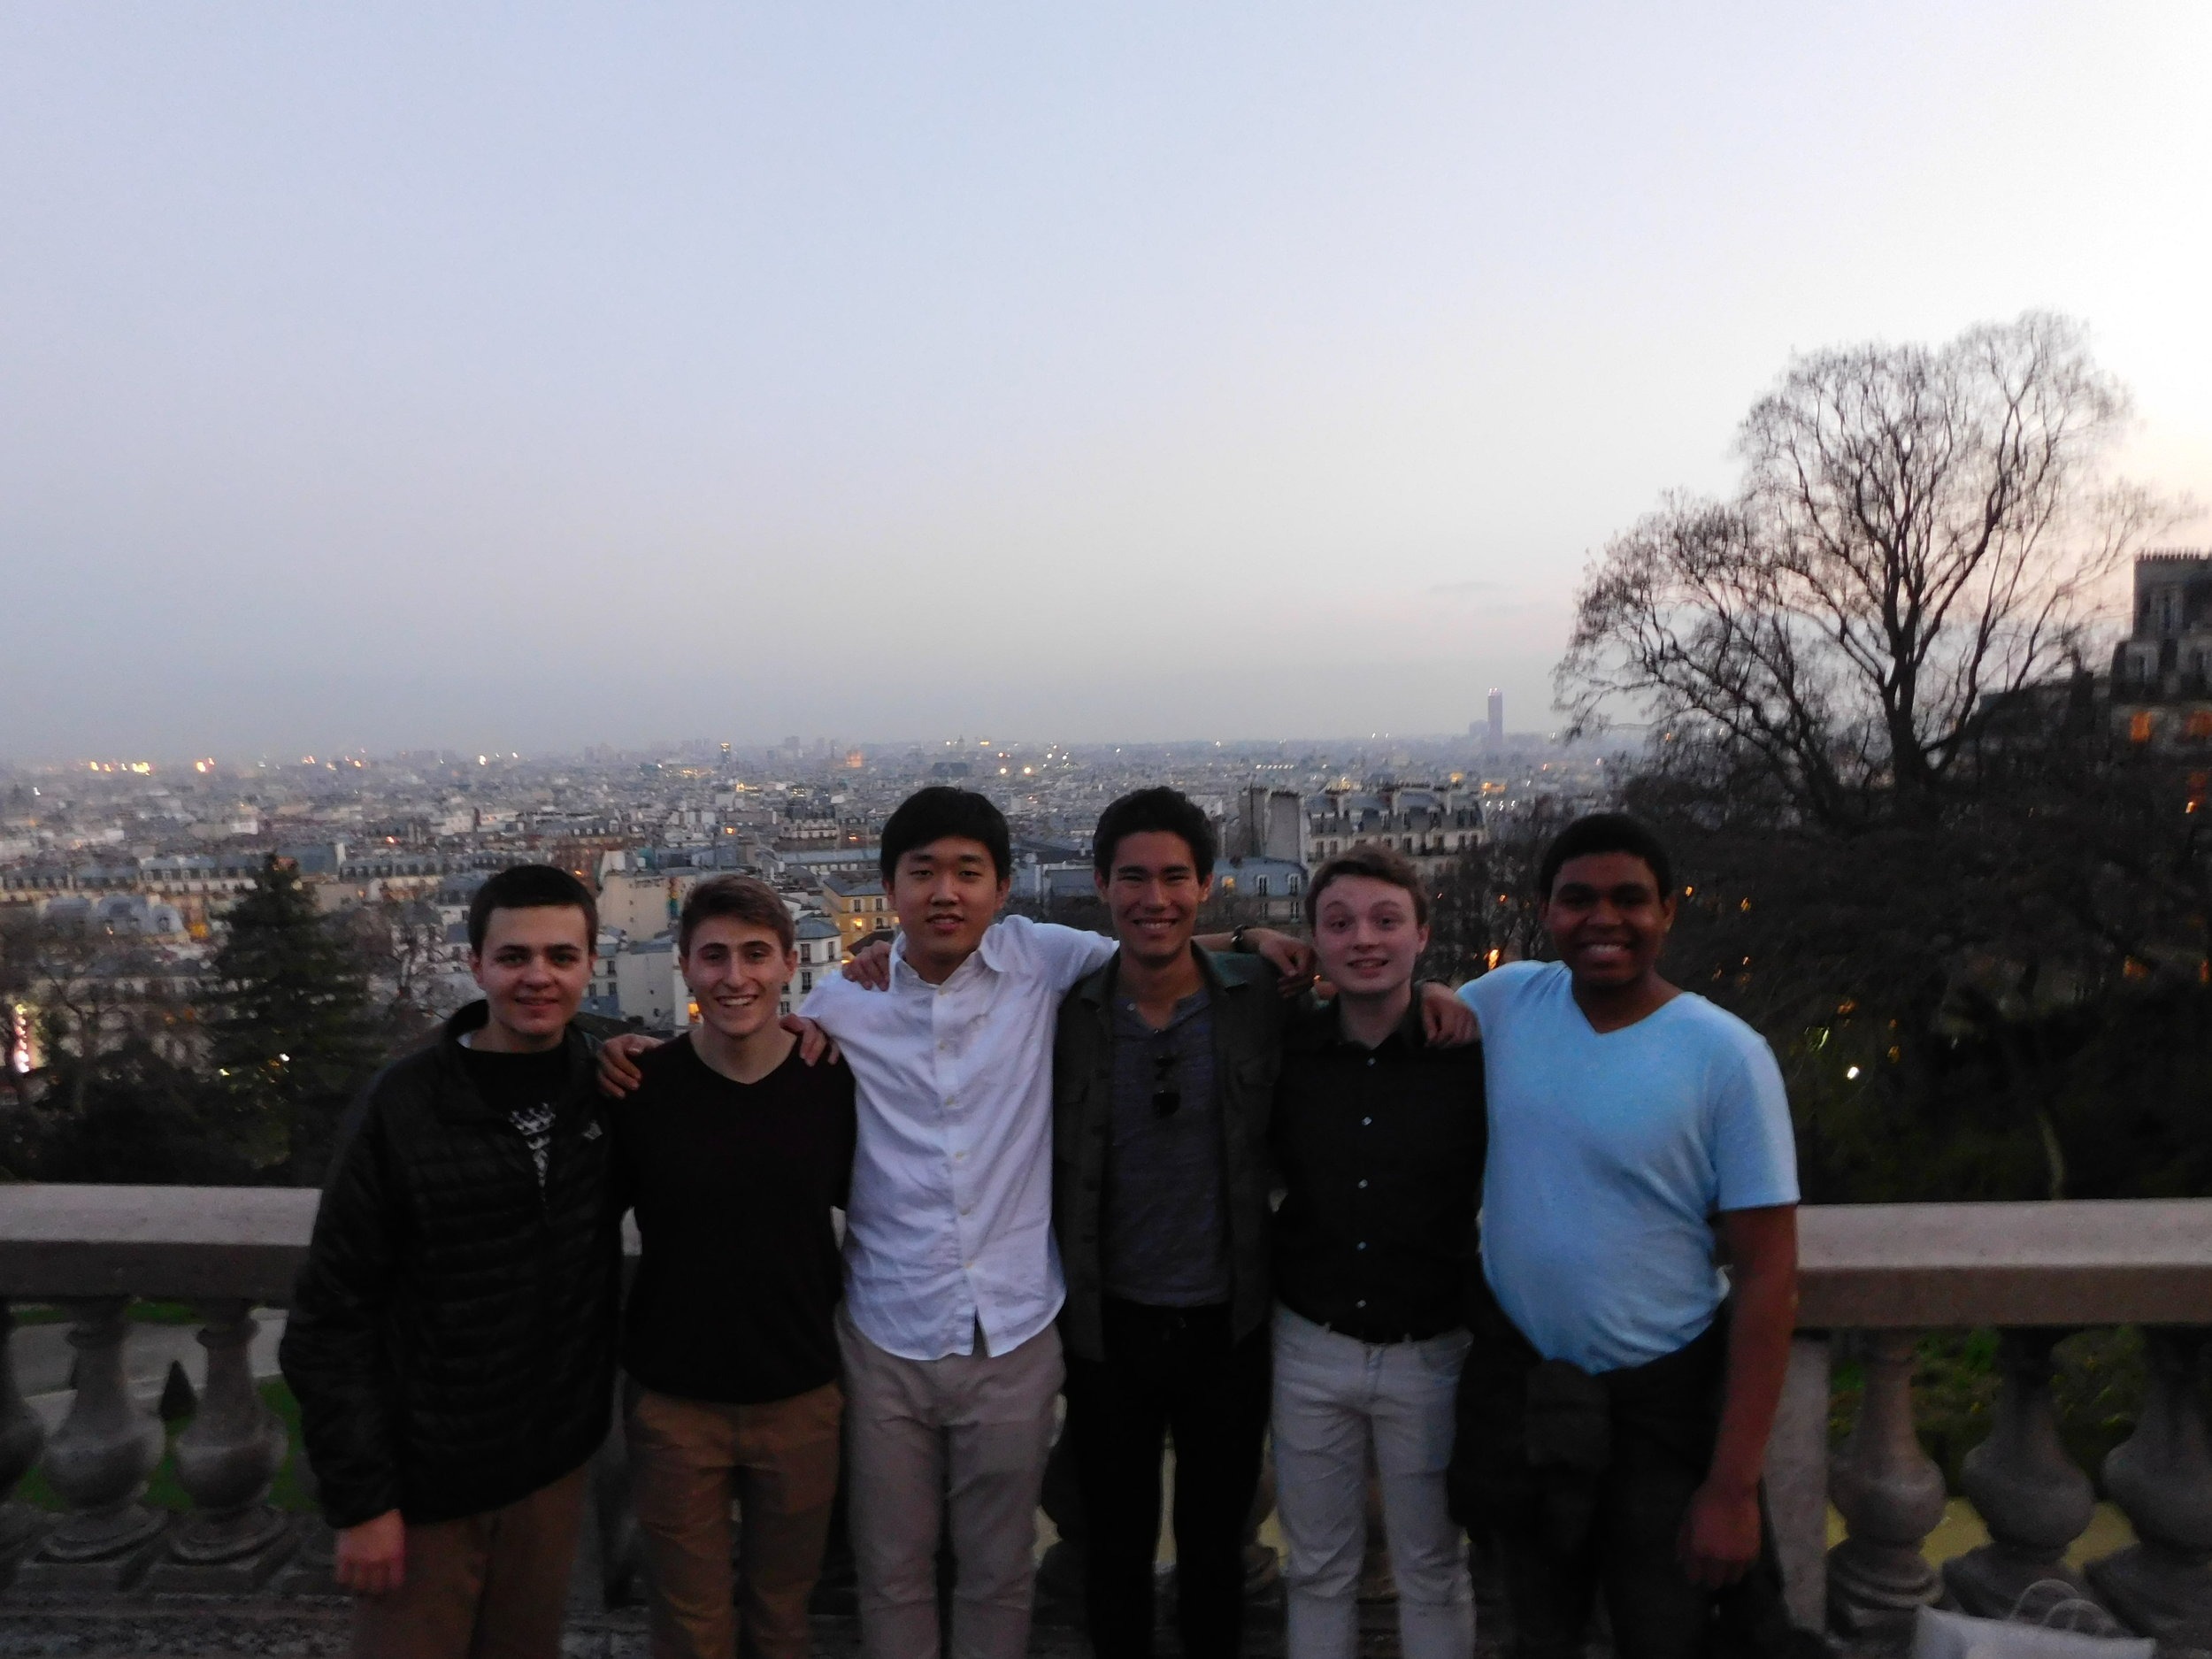 Class of 2020 in front of the Parisian Skyline